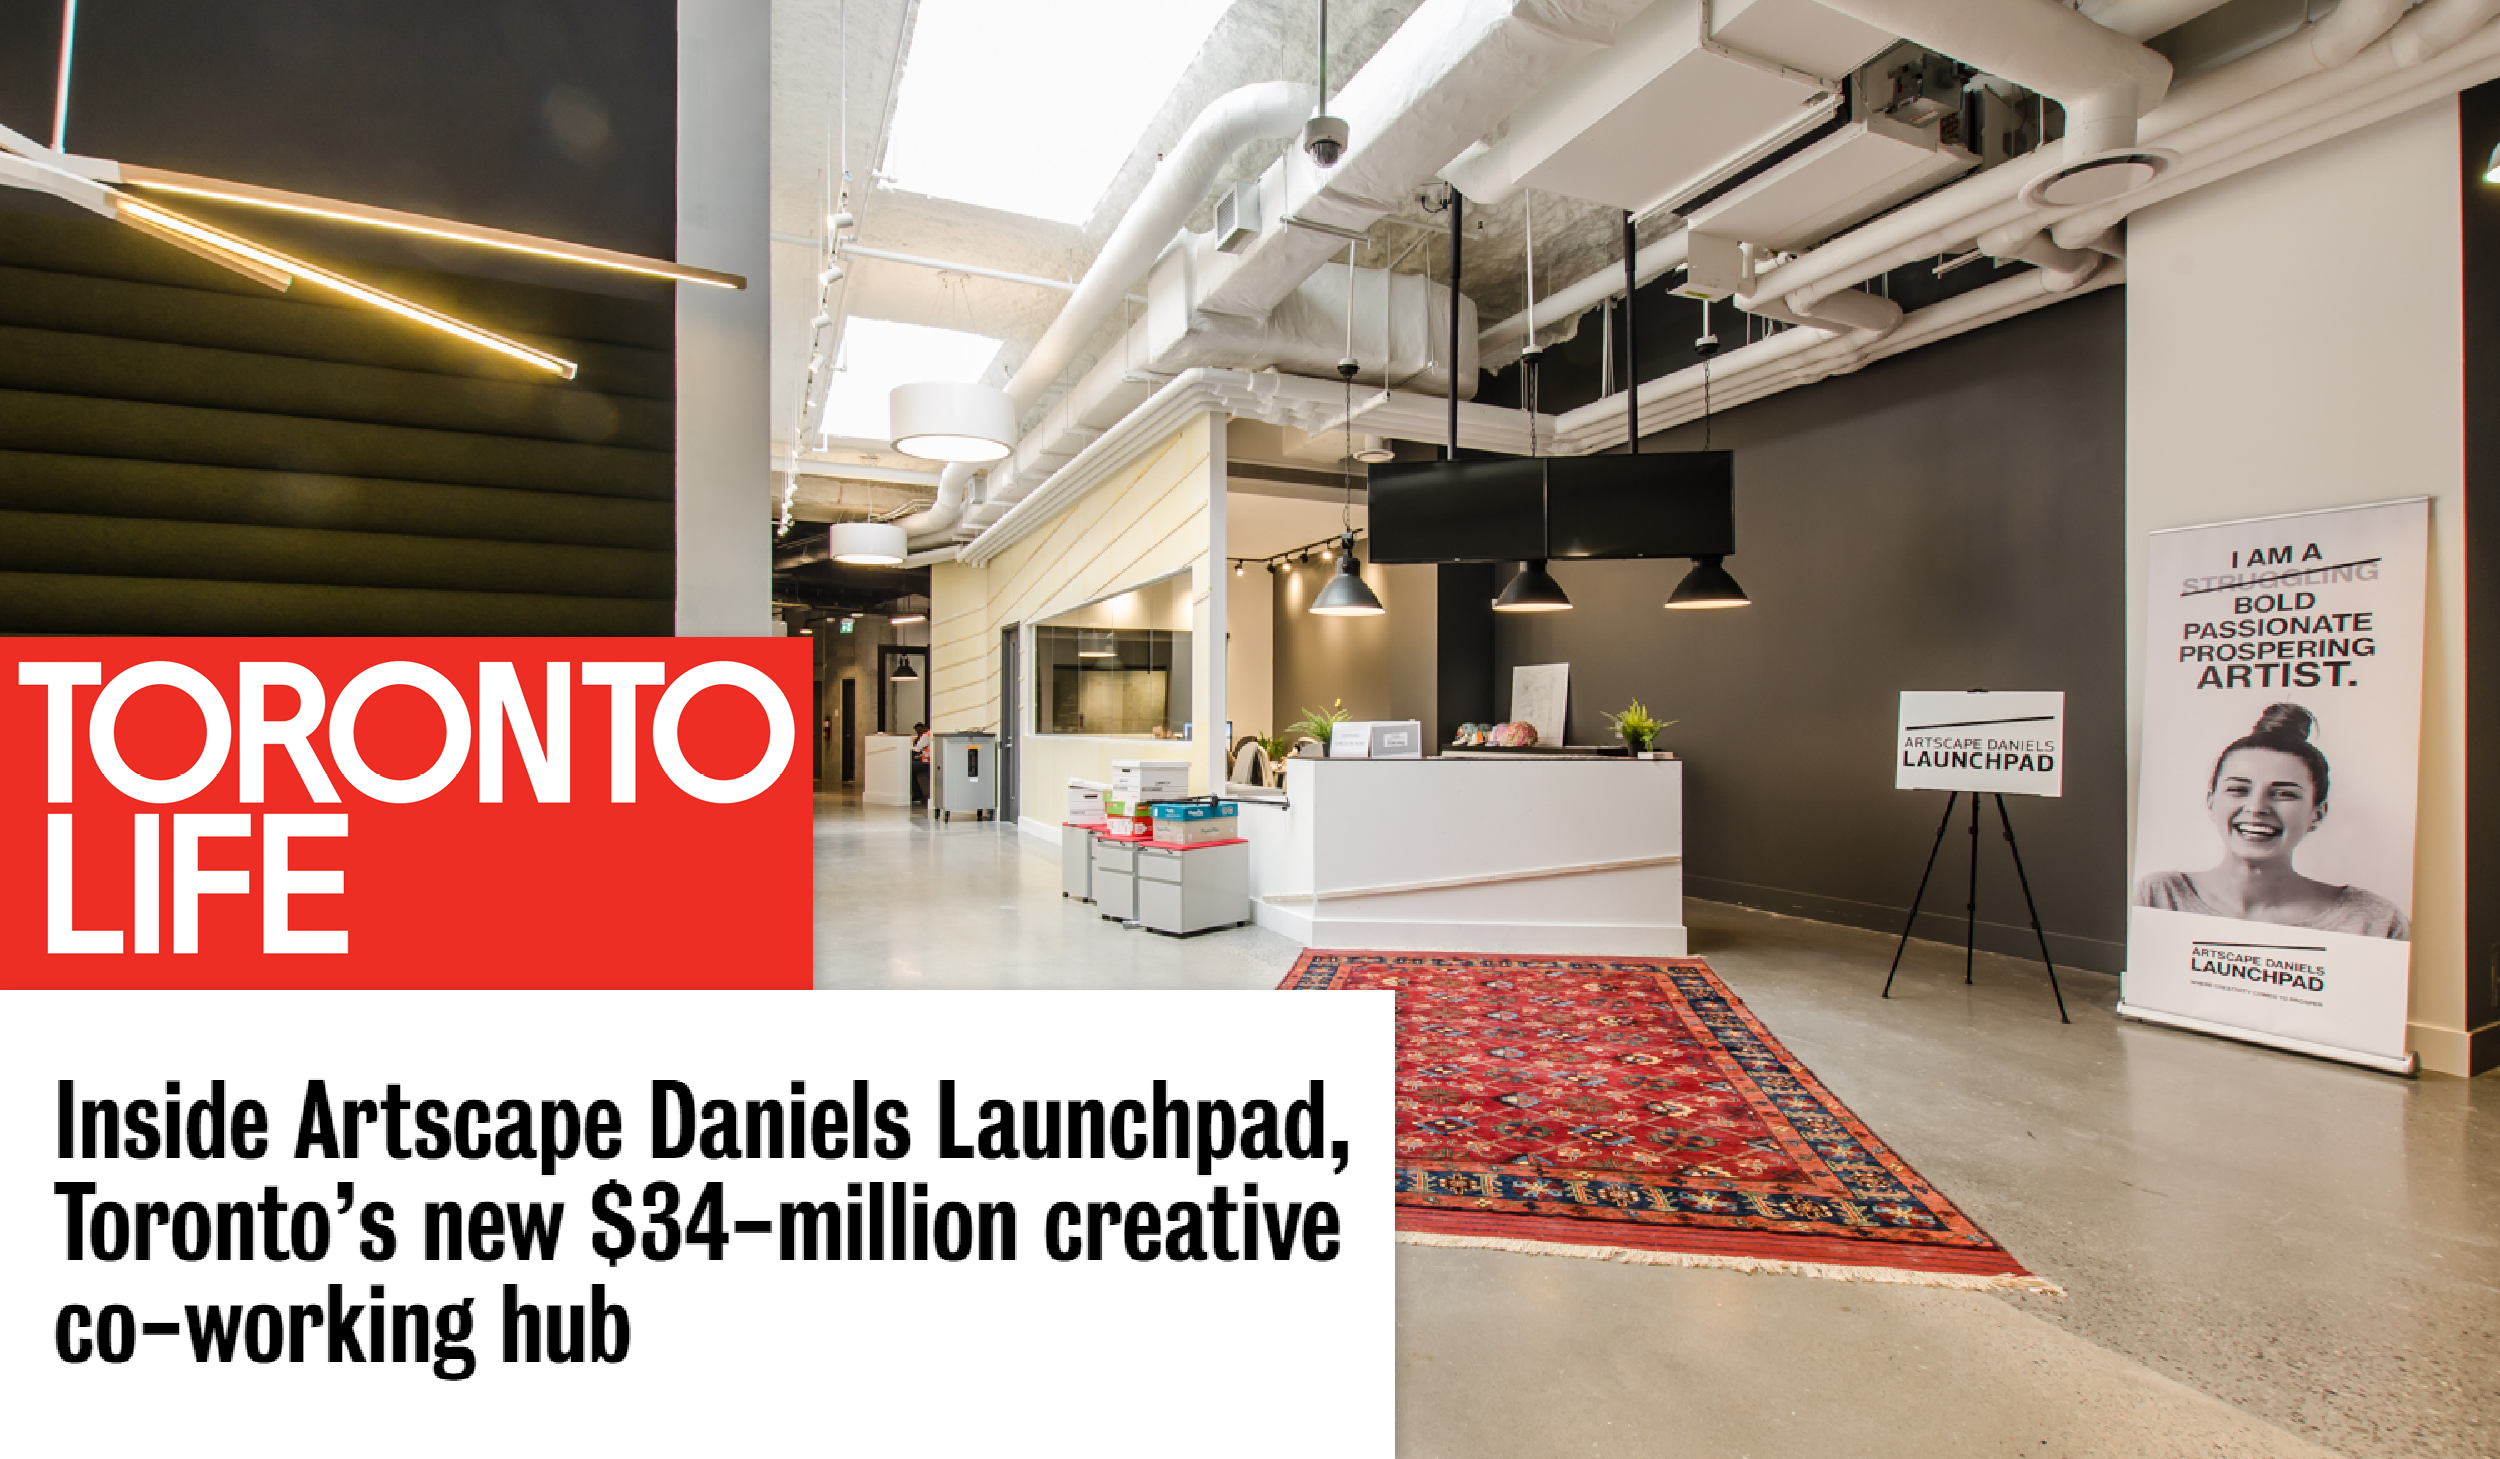 Toronto Life logo and headline Inside Artscape Daniels Launchpad, Toronto's new $34 million creative co-working hub, over a photo of Launchpad's reception lobby